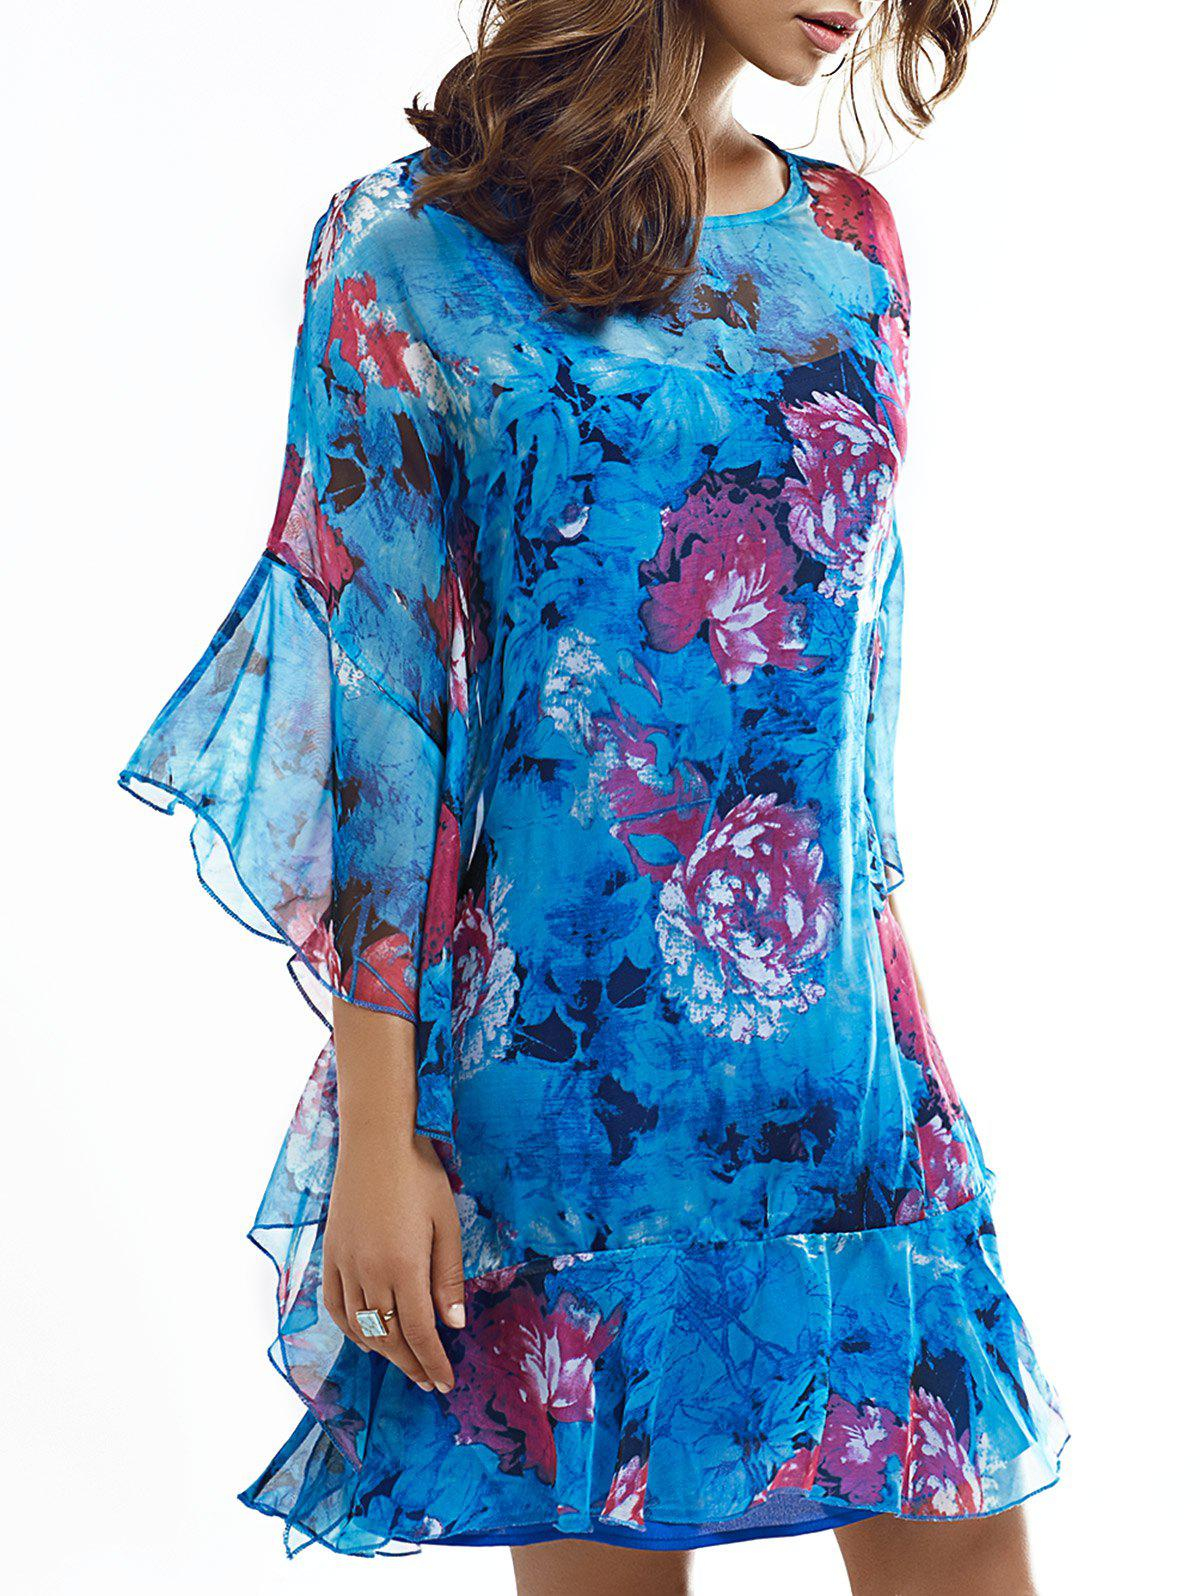 Elegant Floral Print Dolman Sleeve Ruffle Layered Dress - BLUE XL